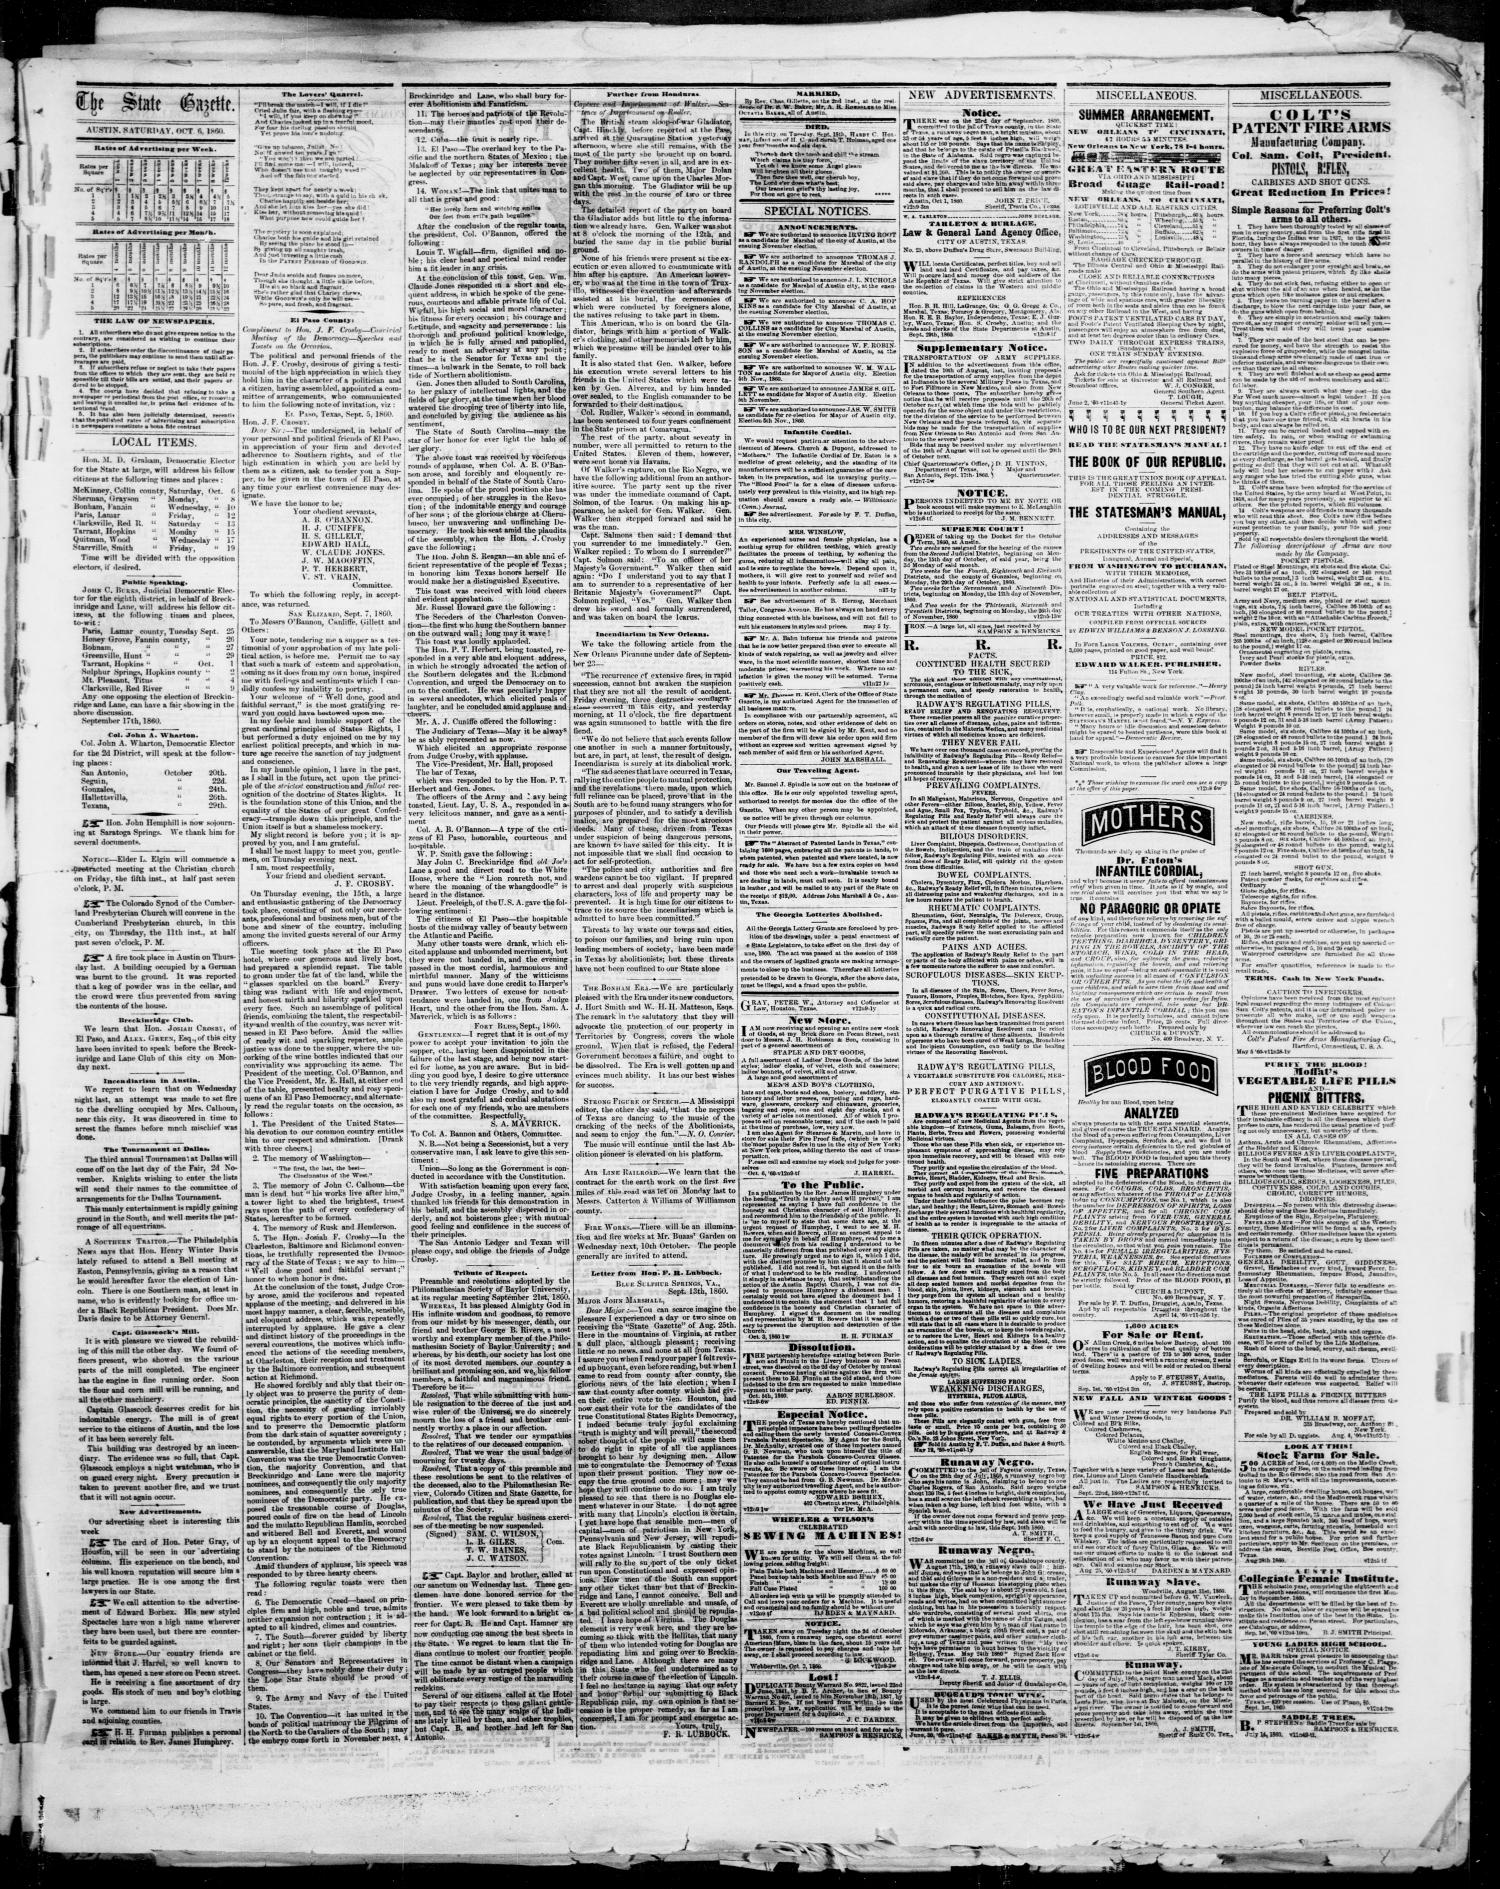 State Gazette. (Austin, Tex.), Vol. 12, No. 9, Ed. 1, Saturday, October 6, 1860                                                                                                      [Sequence #]: 3 of 4